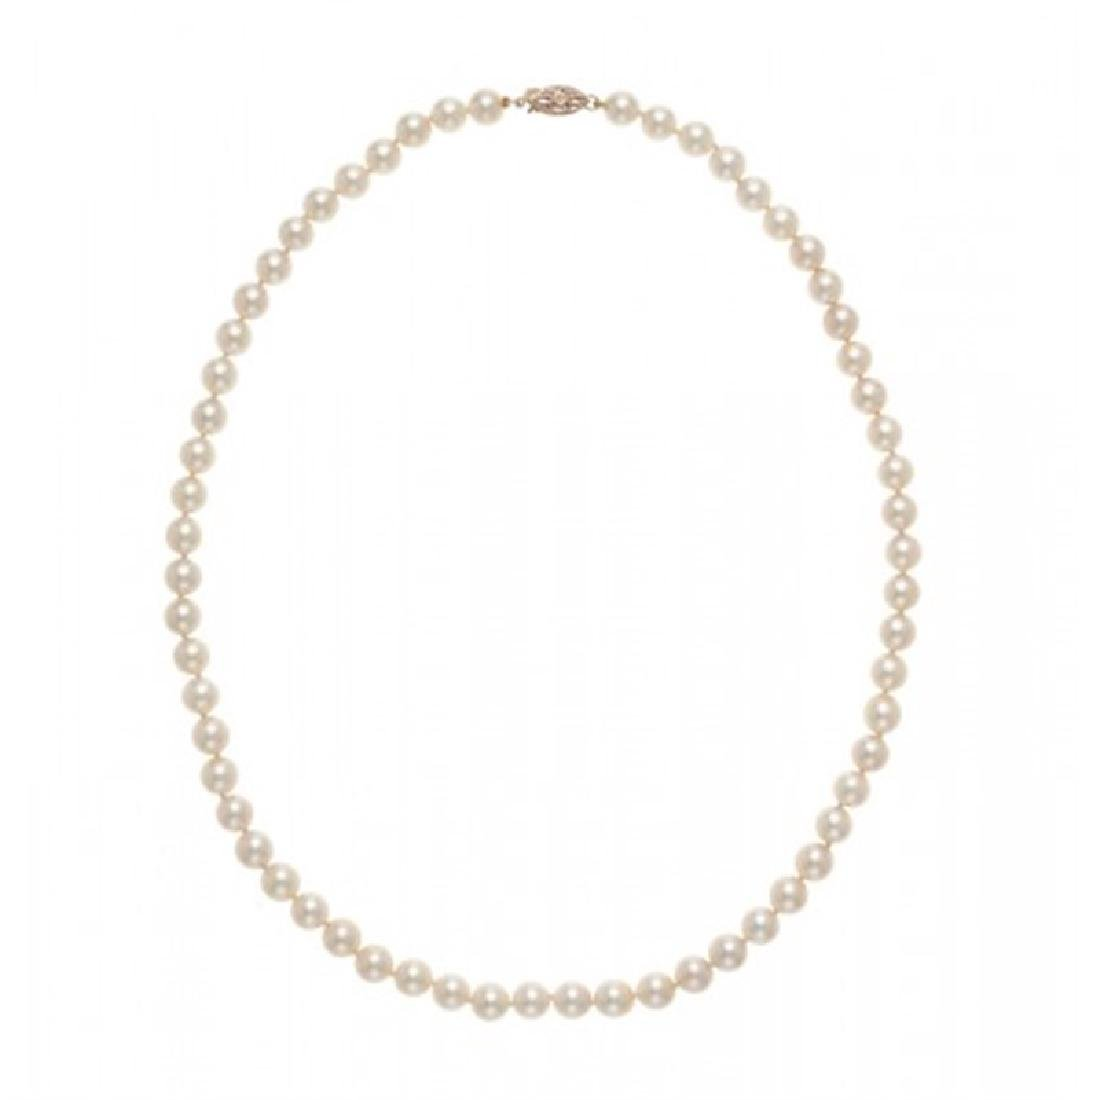 6.5-7.0mm Japanese Akoya Pearl Necklace